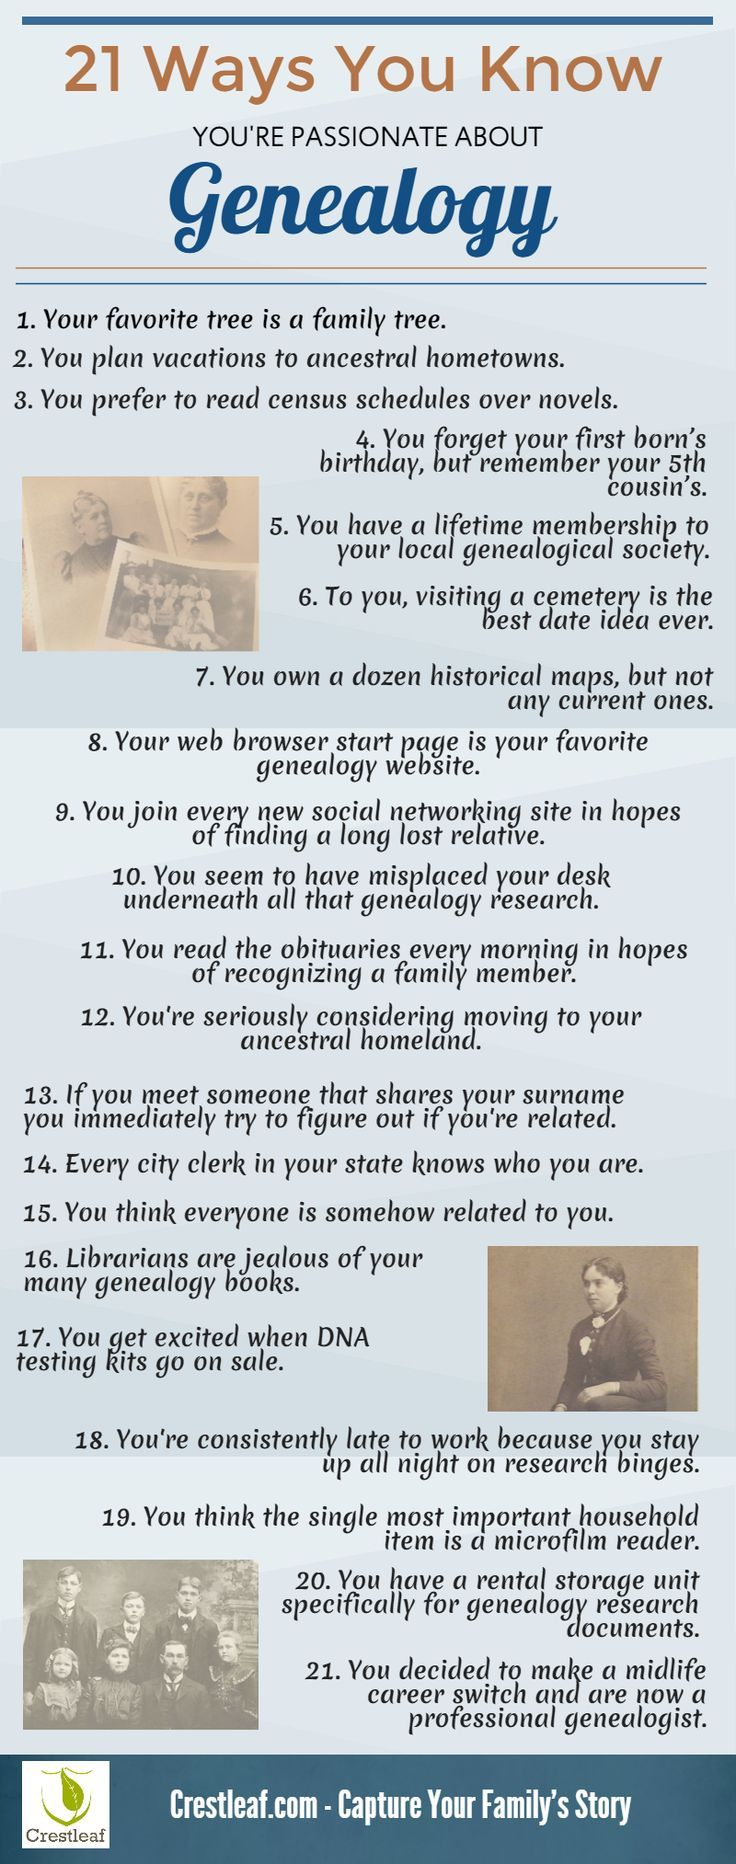 Quotes on the importance of history - Are You Family History Obsessed Our Infographic Tells You How To Know If You Re Passionate About Genealogy